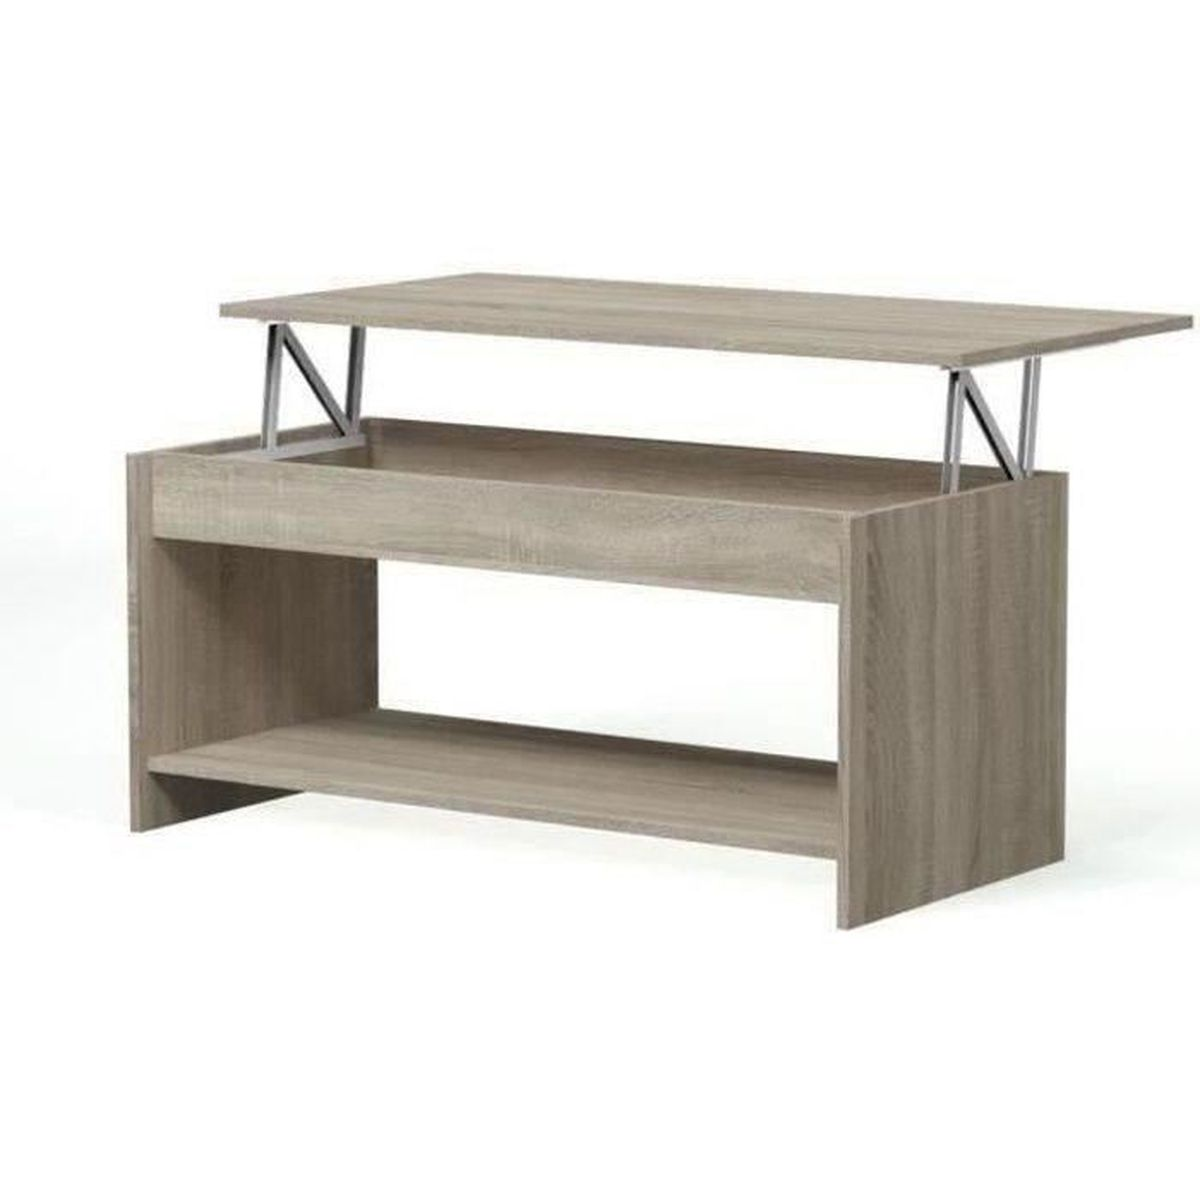 Happy table basse transformable 100x50 cm lamin ch ne for Table basse manger transformable